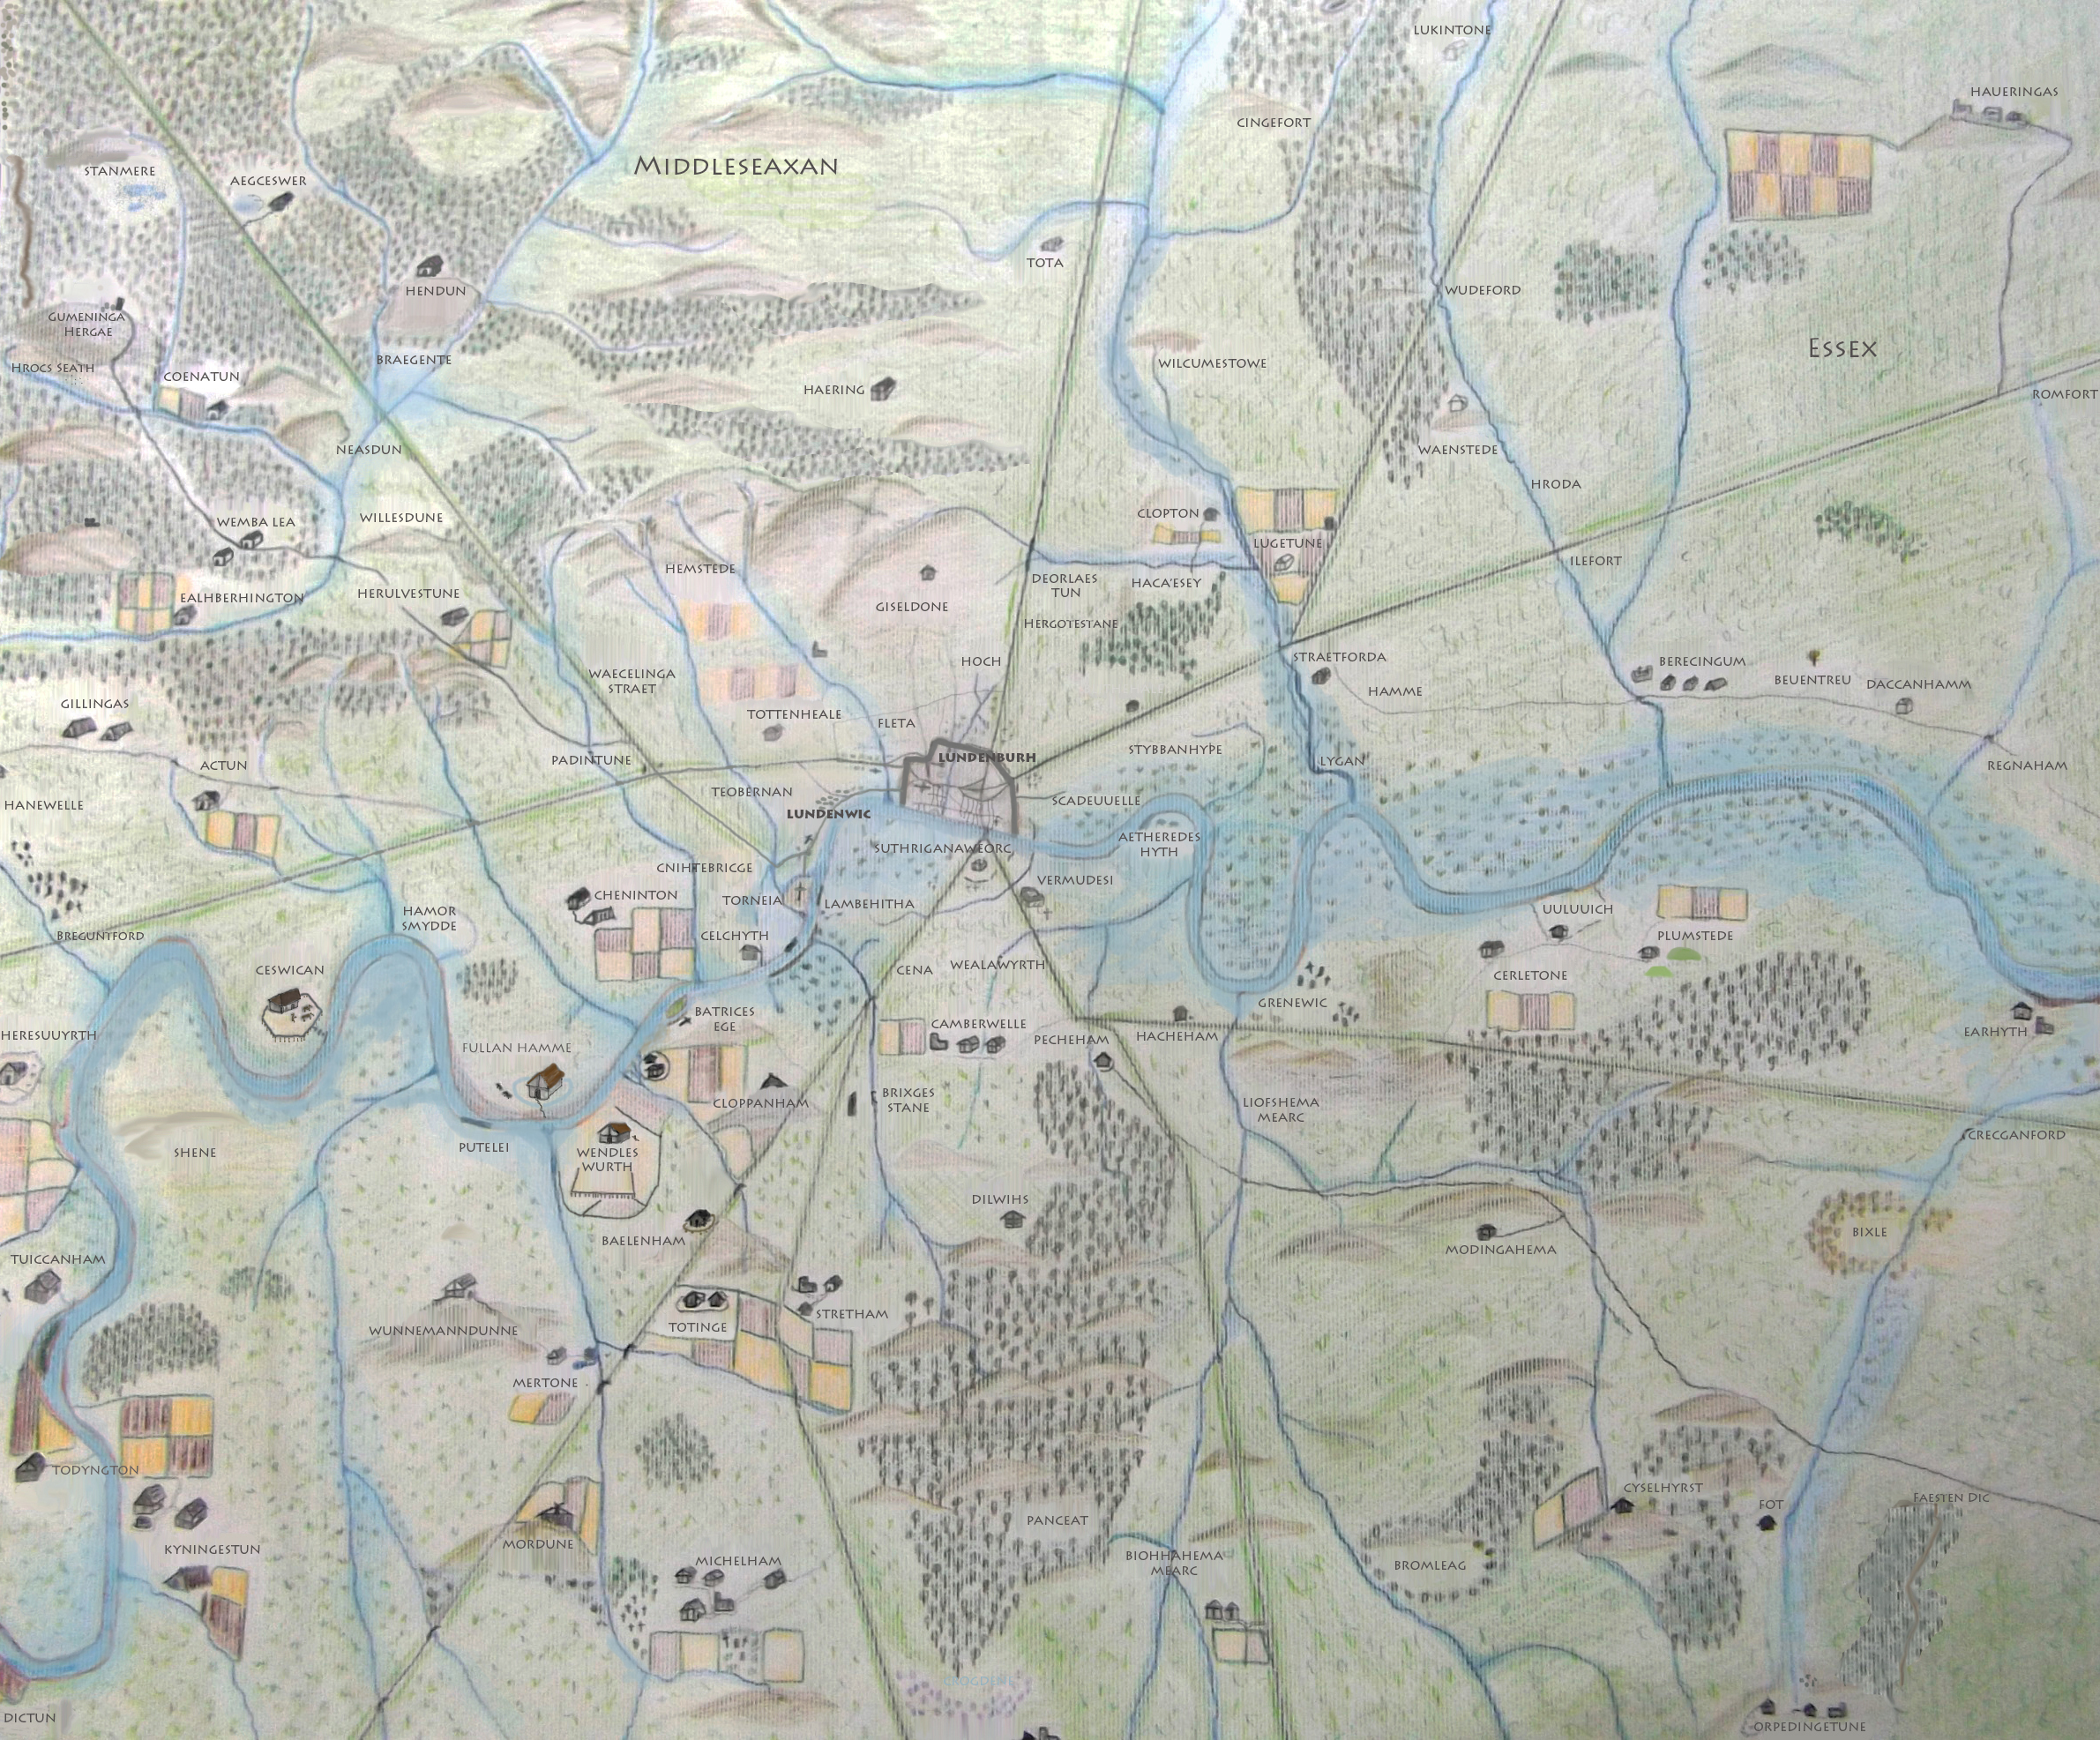 click here for the full resolution anglo saxon map